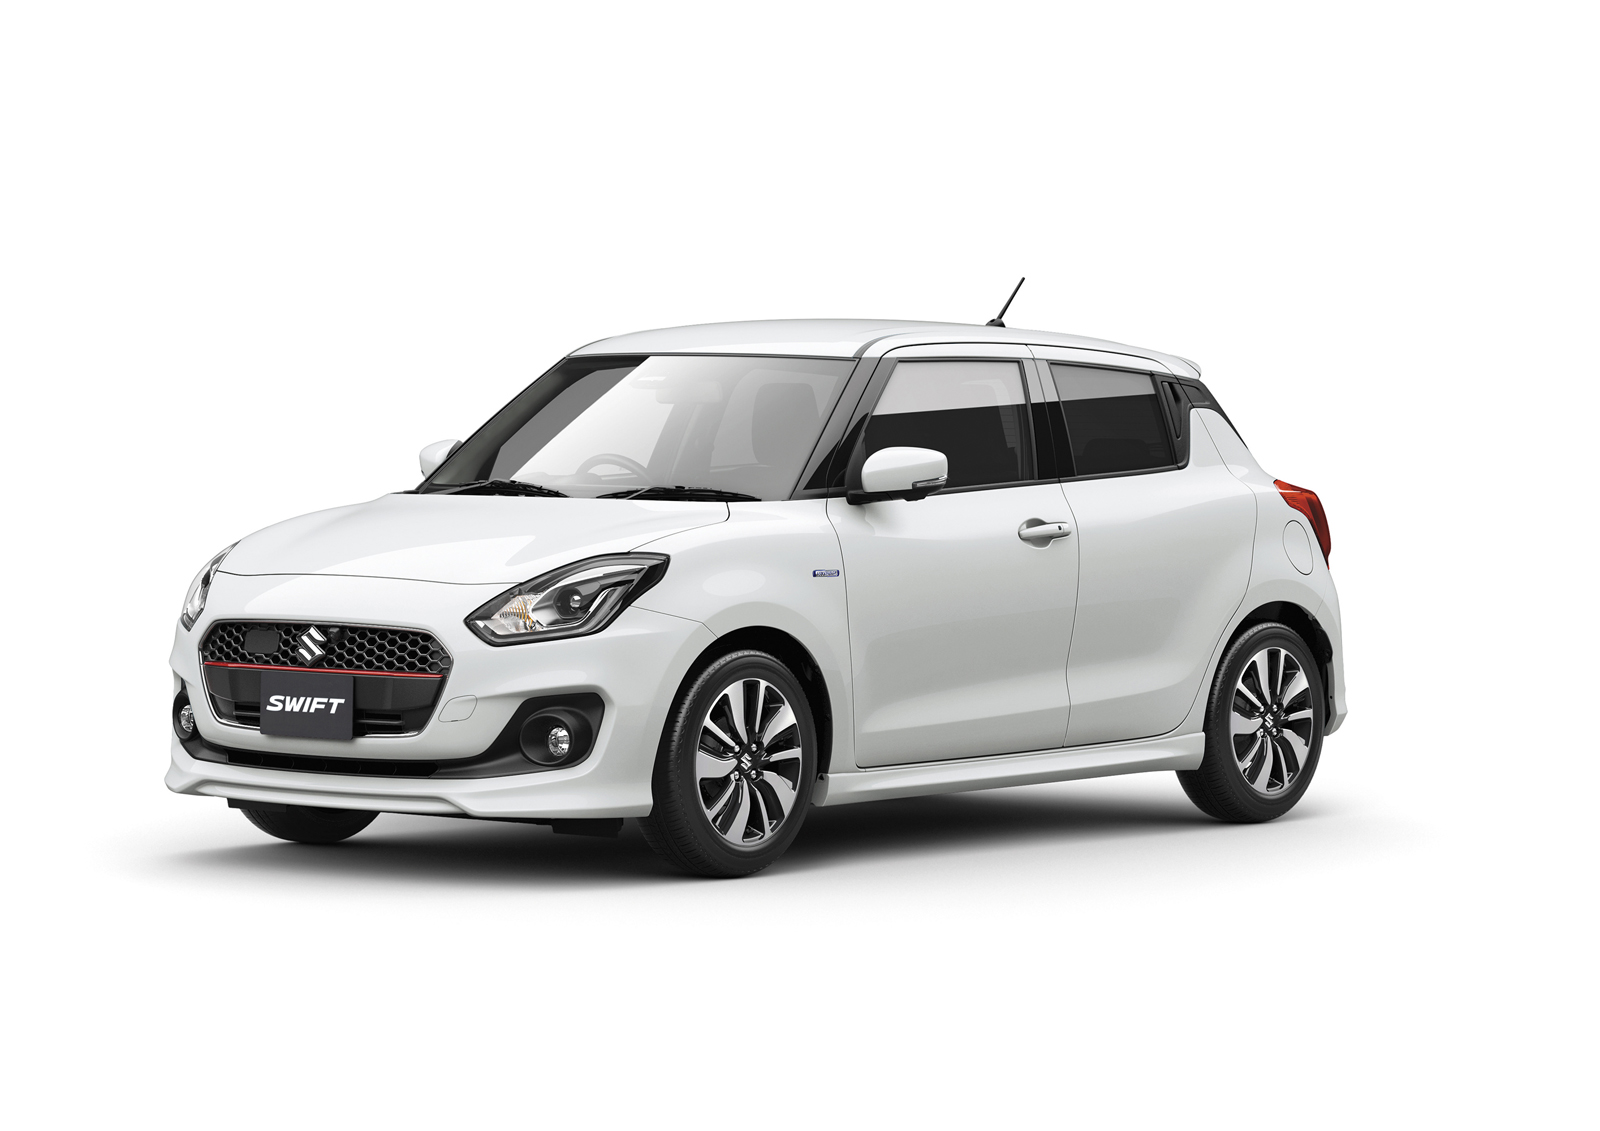 Suzuki Swift 2017 (14)